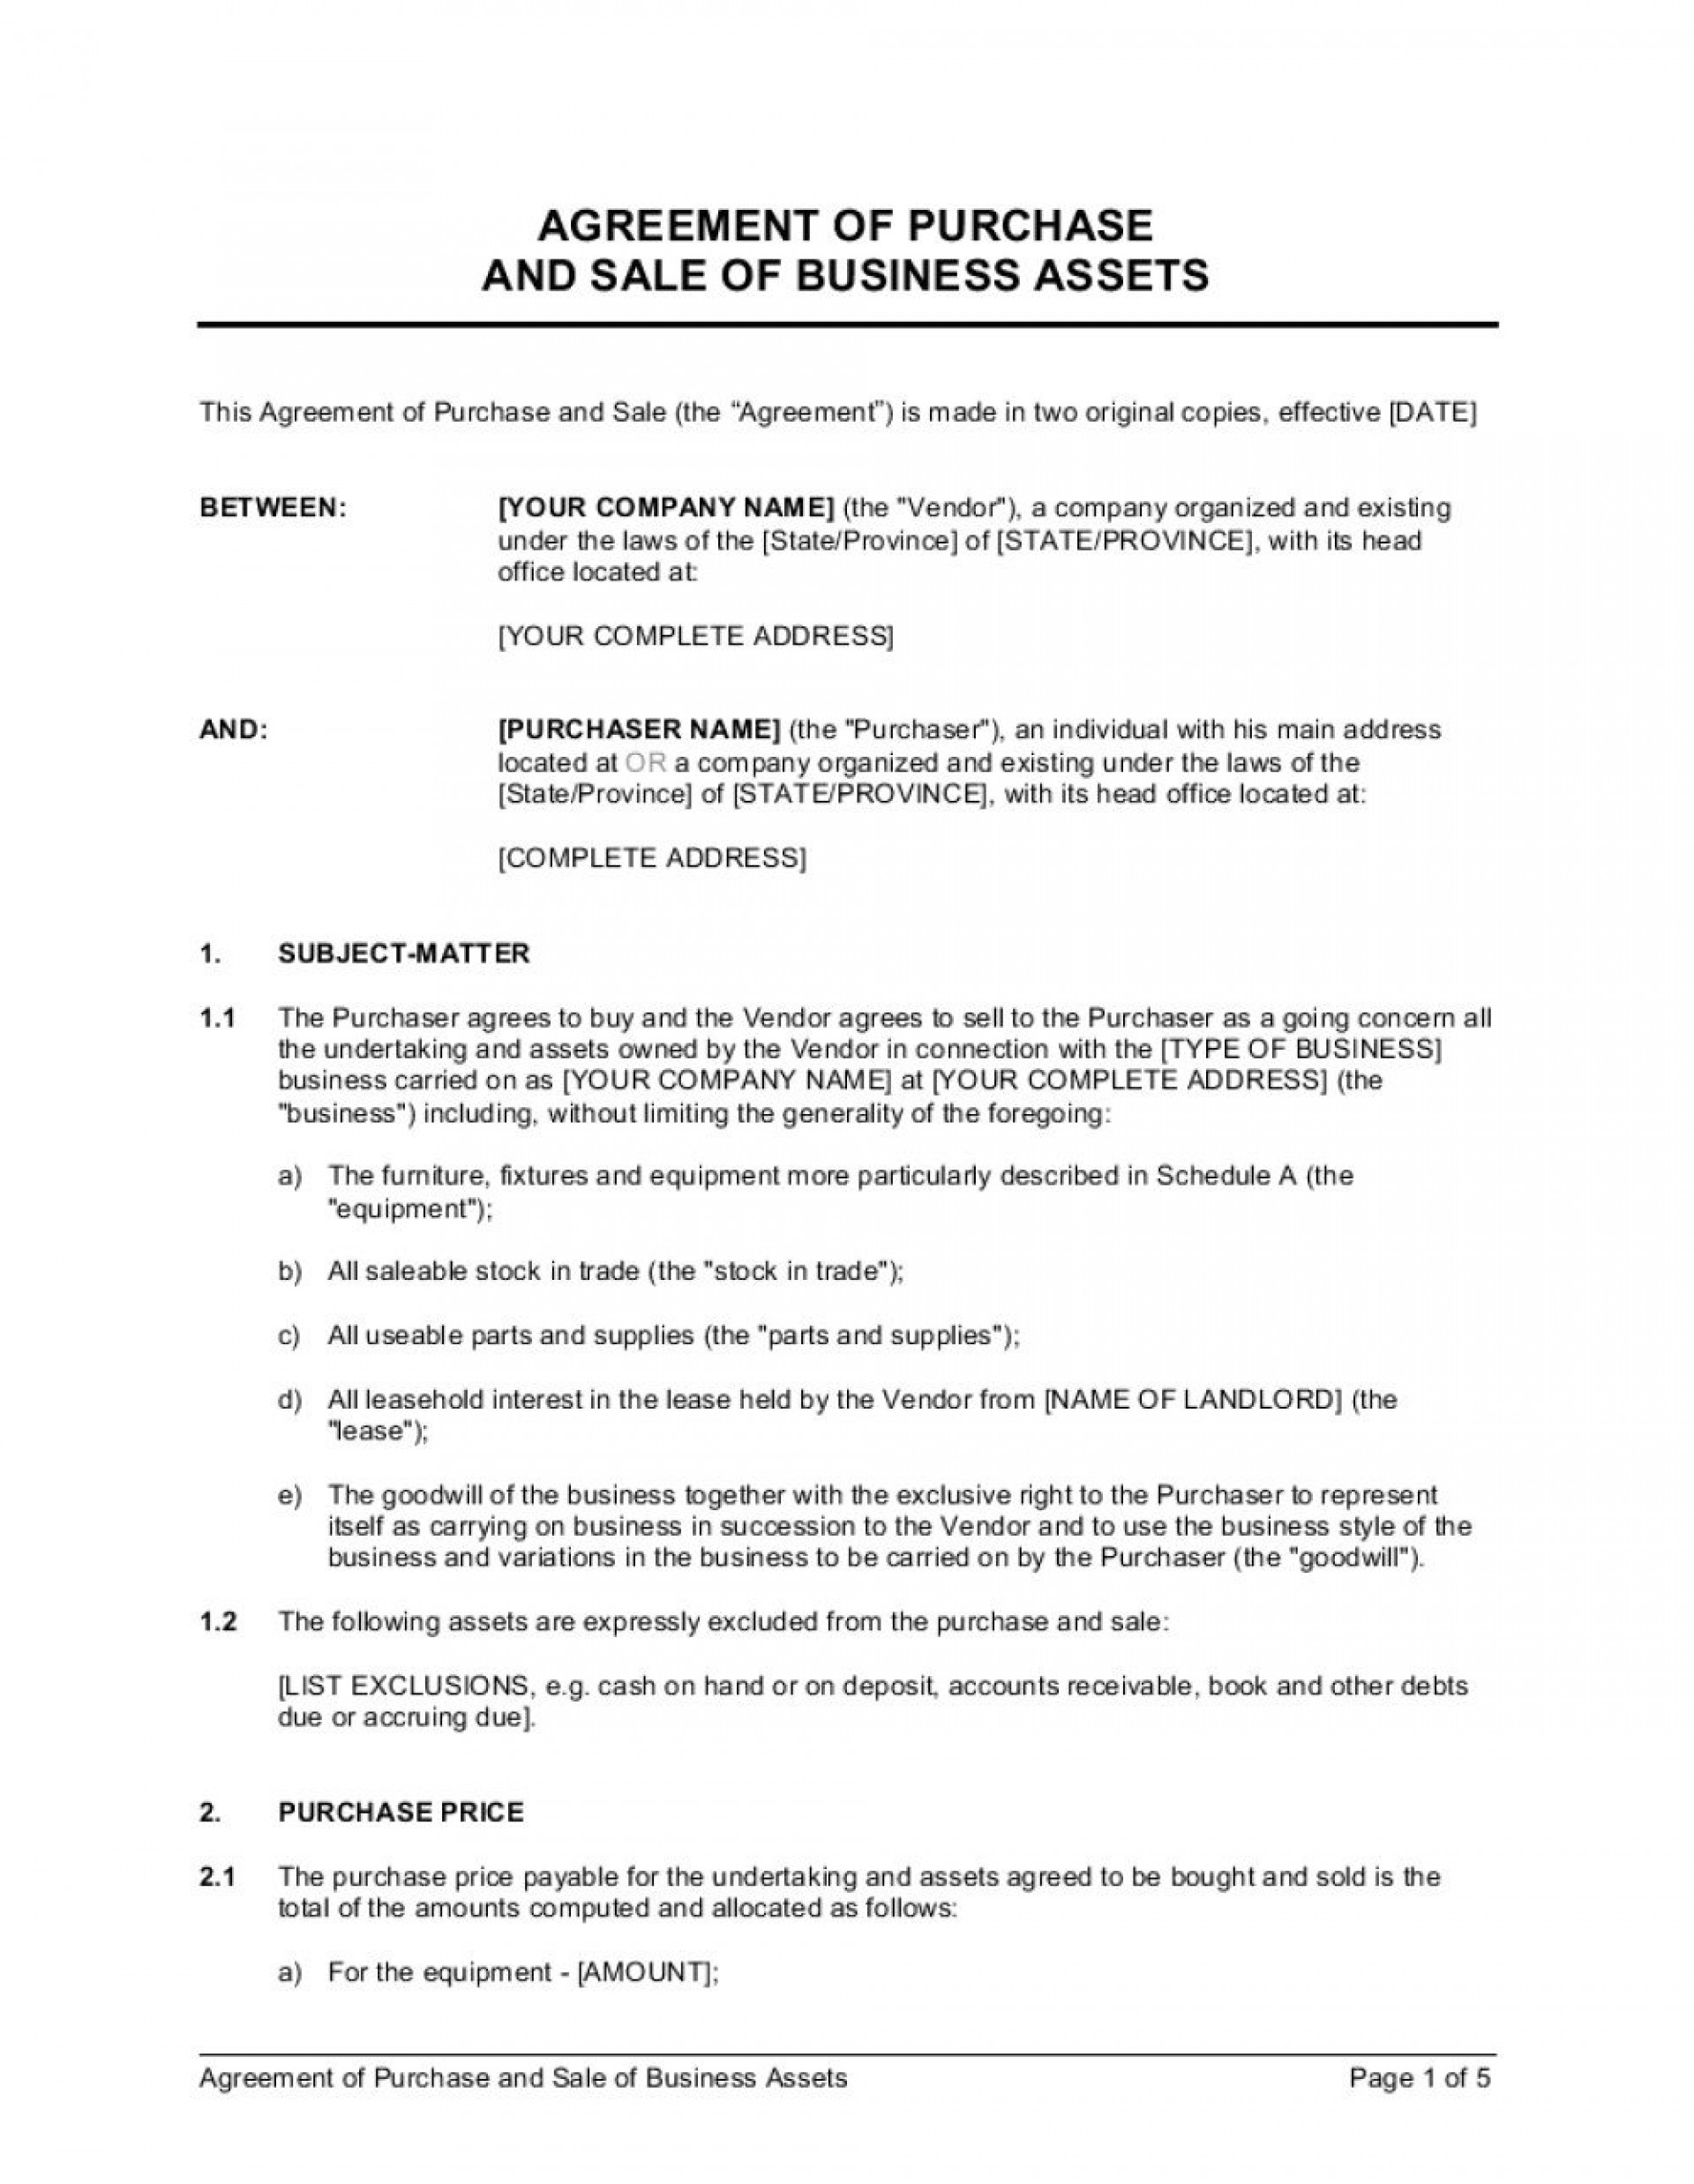 003 Beautiful Busines Sale Agreement Template Inspiration  Free Download Uk Contract Word1920